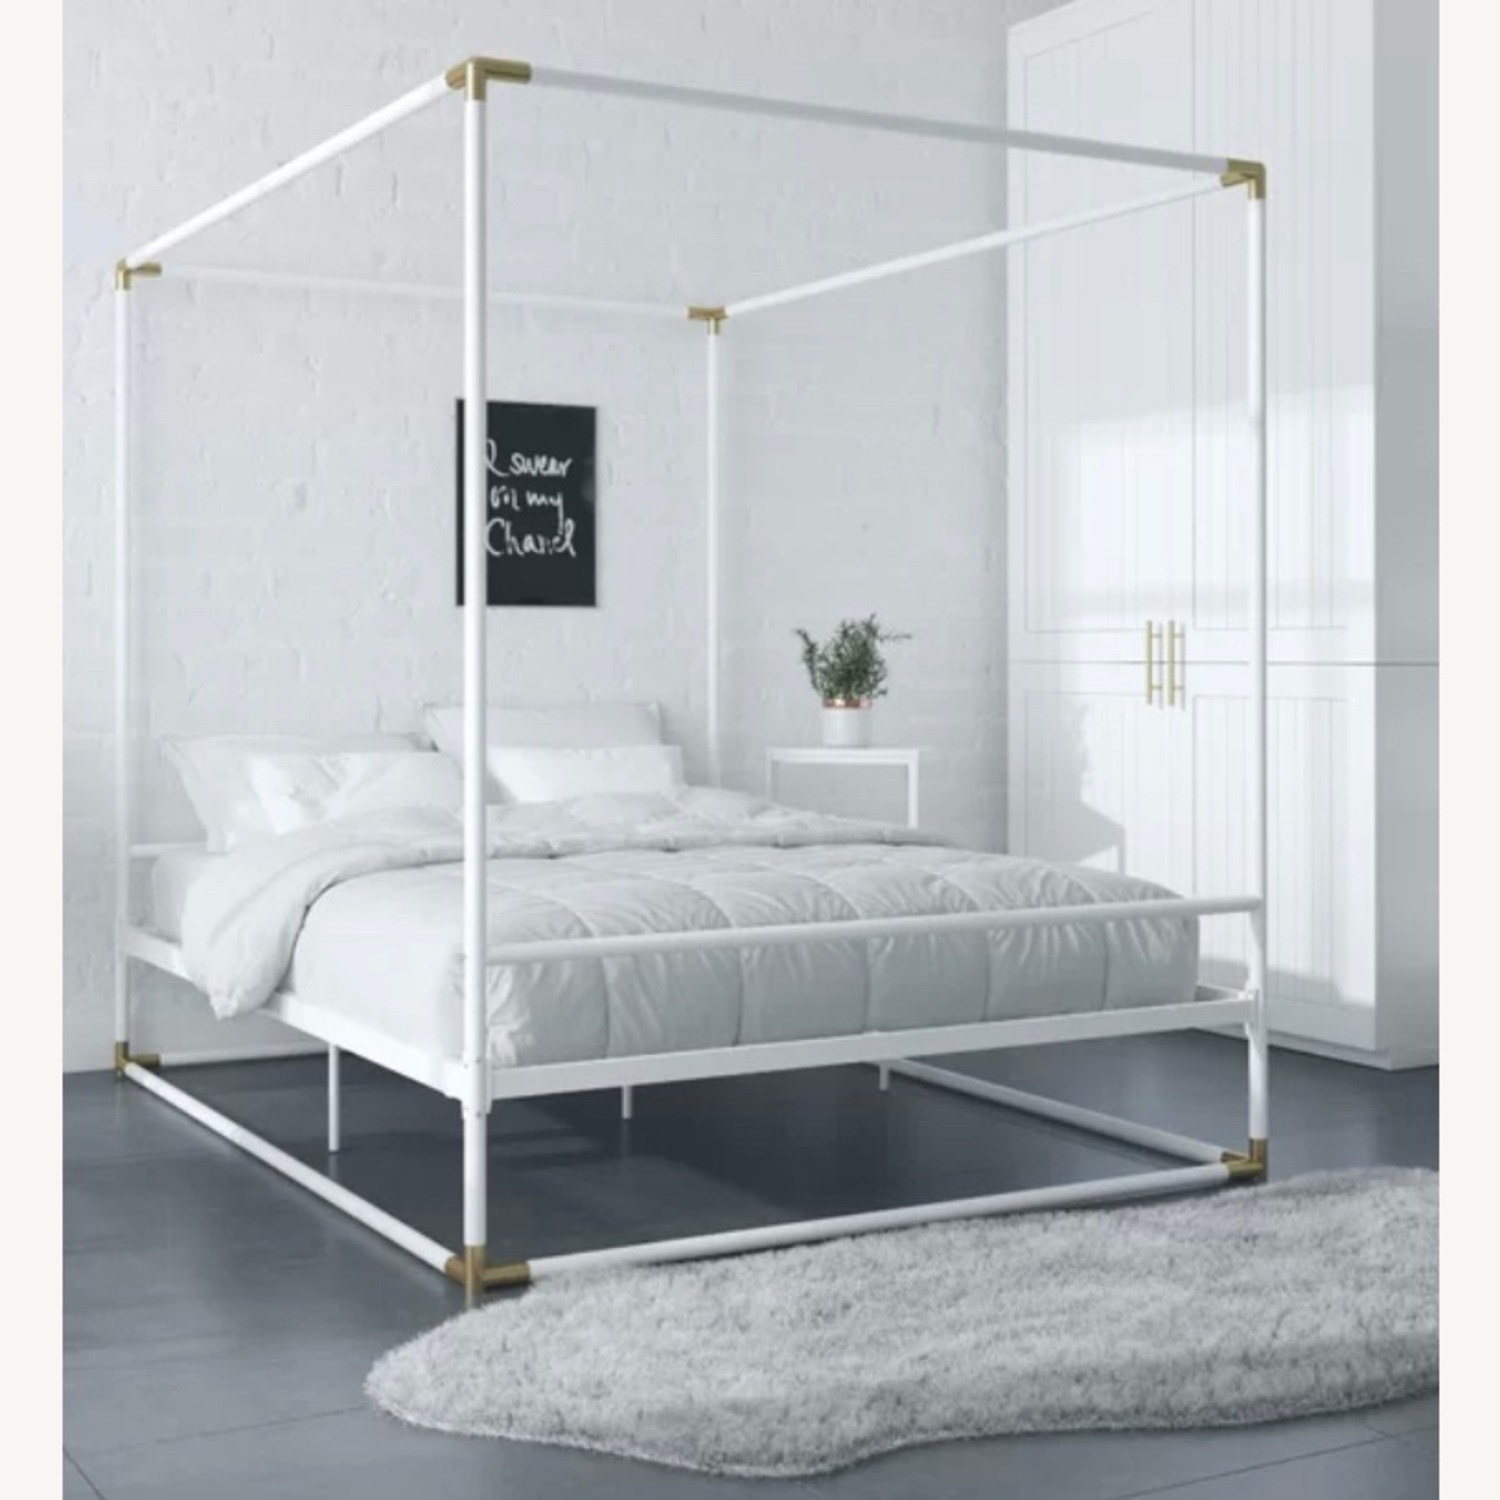 Wayfair White & Gold Metal Full Sized Canopy Bed - image-2